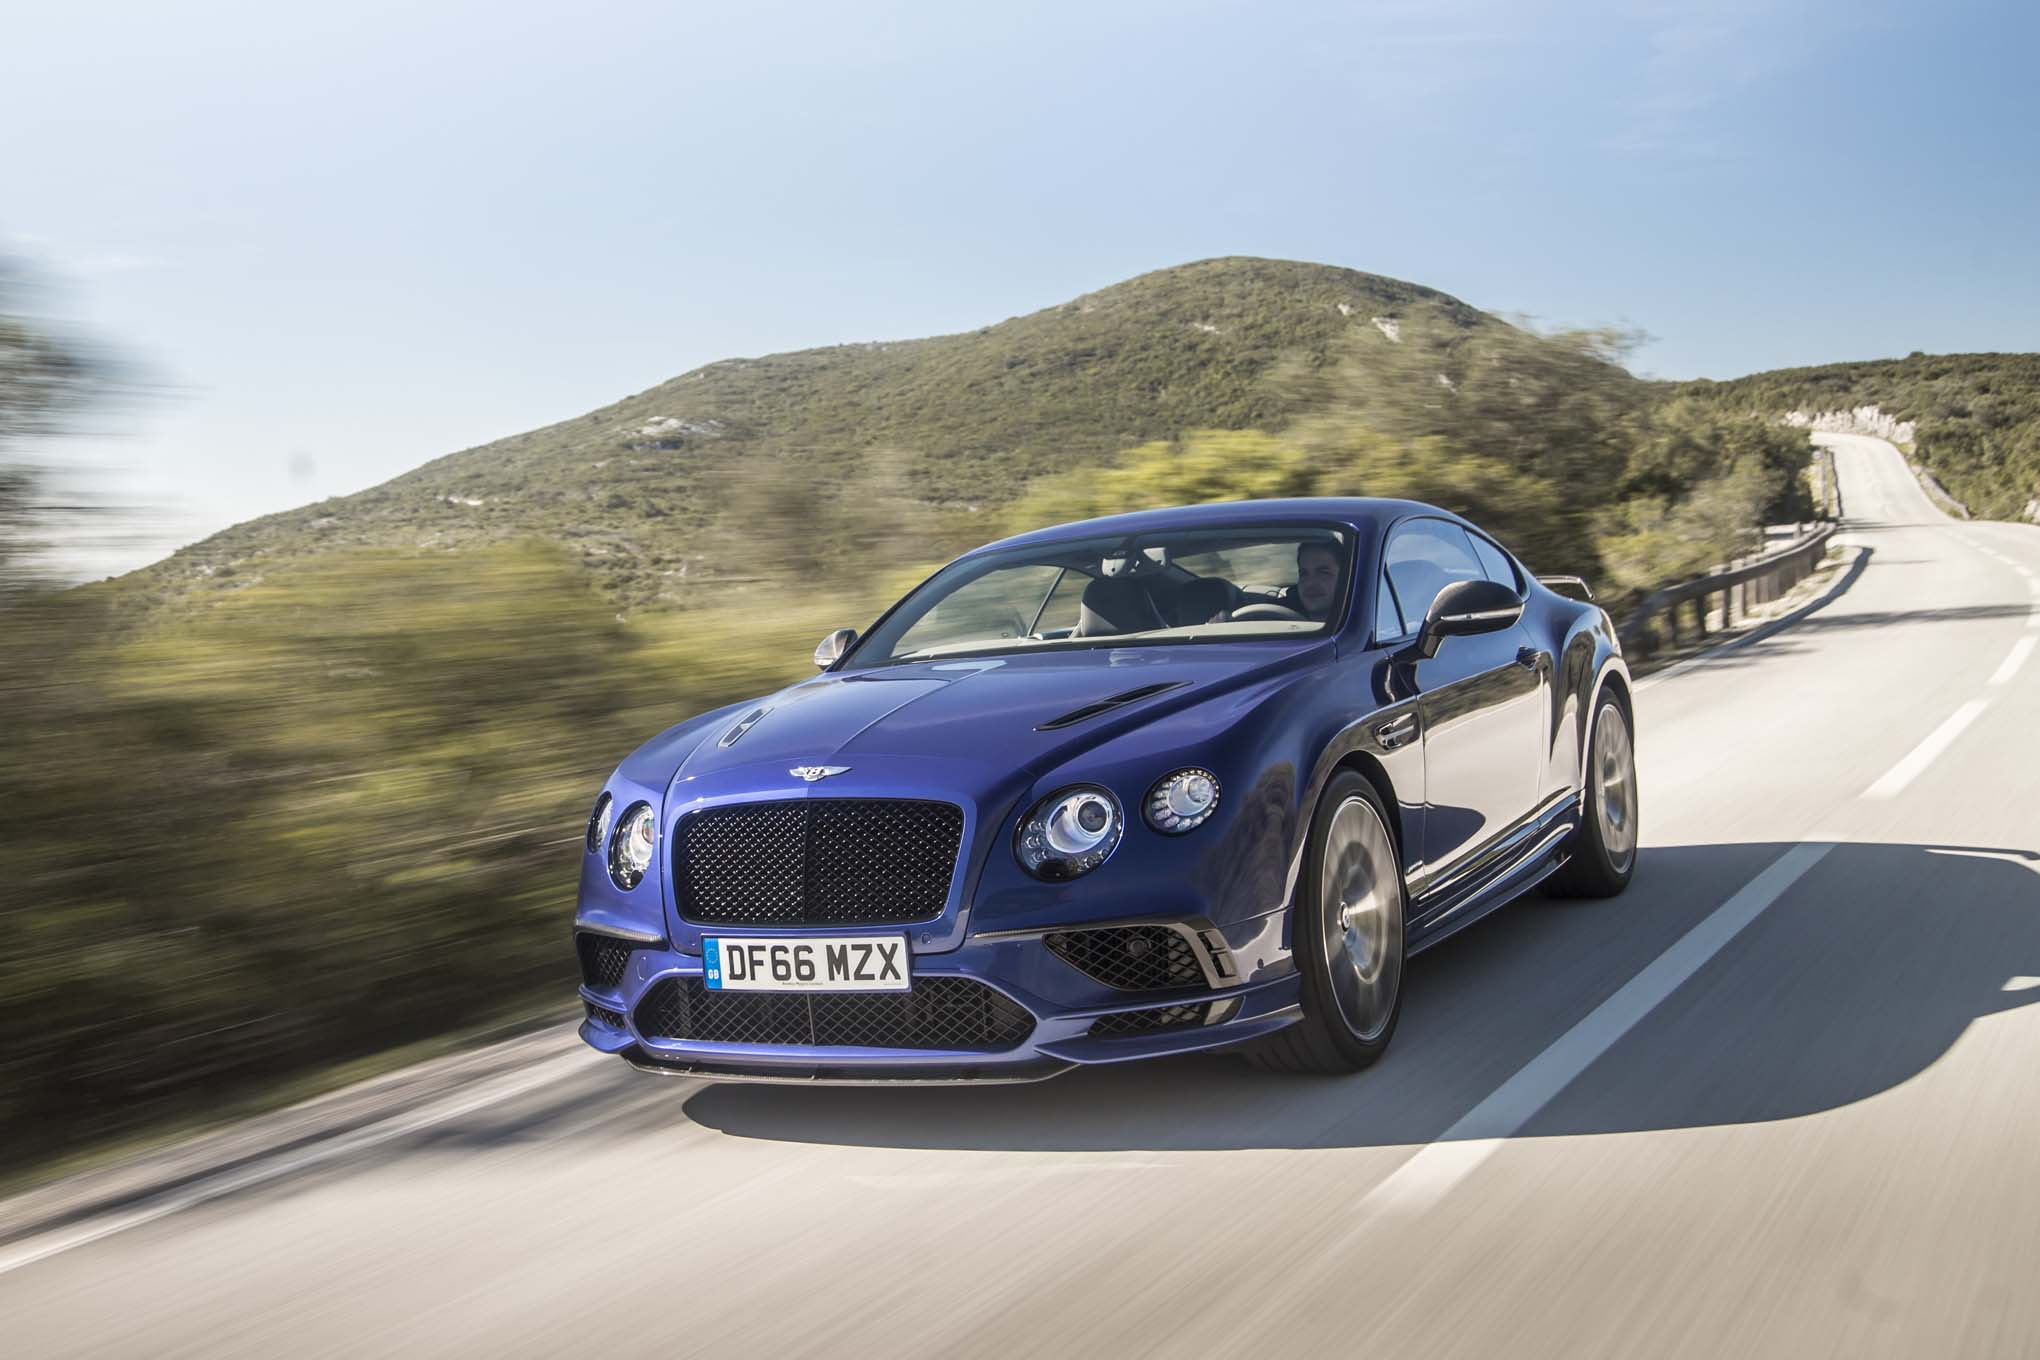 flying of car what price spur the bentley cost photos and reviews is a driver specs